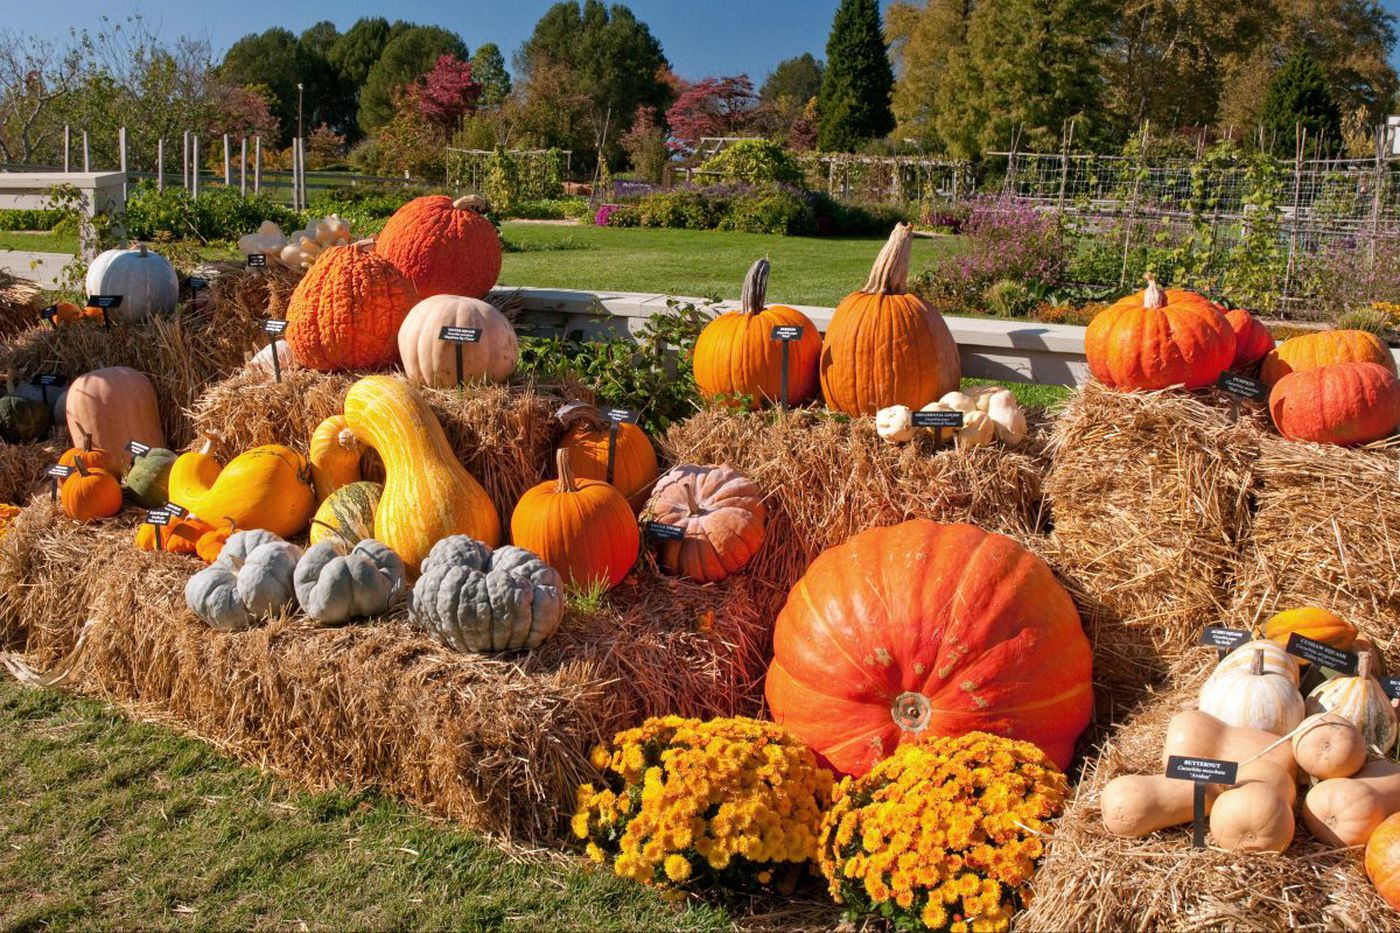 Ways to avoid pumpkins and still enjoy fall in Philly